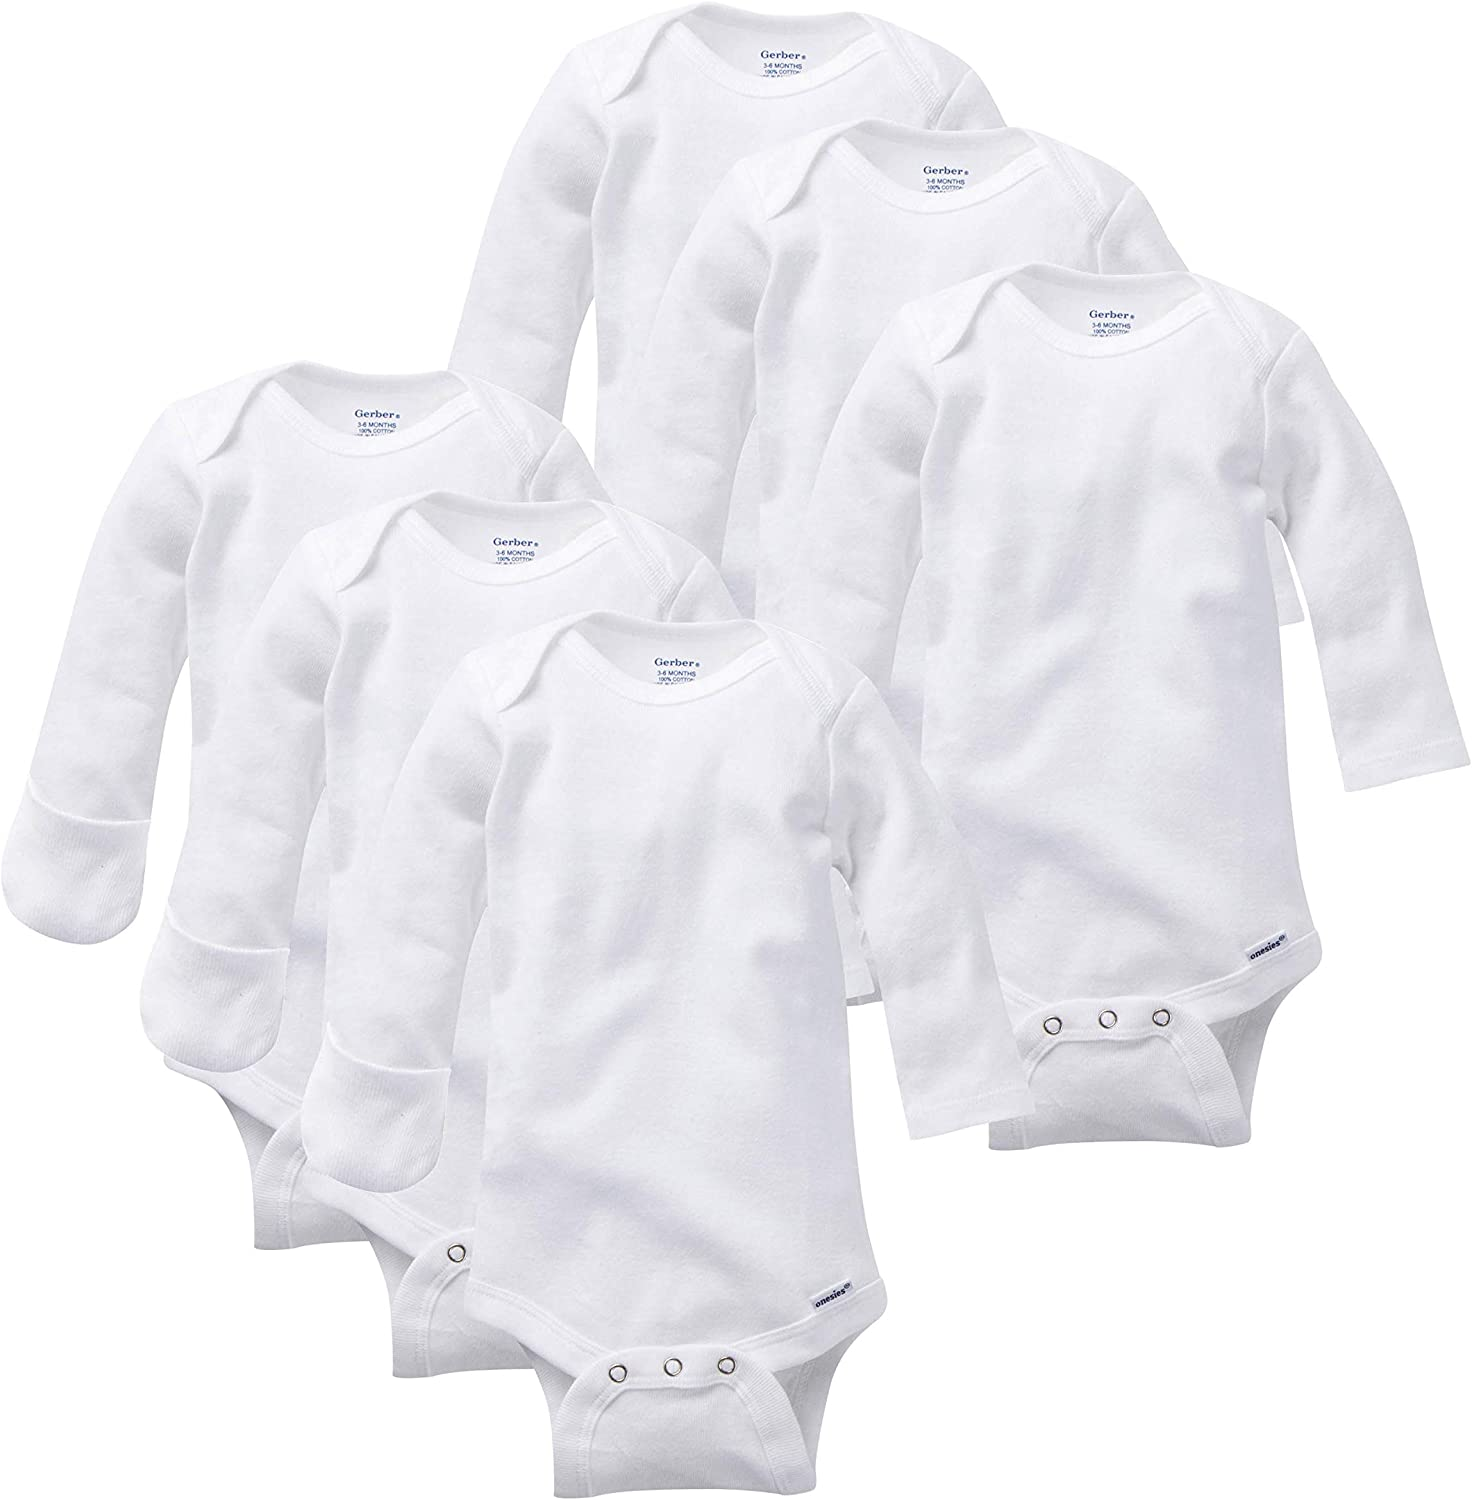 Amazon.com: GERBER Baby Girls' 6-Pack Long-Sleeve Mitten-Cuff ...